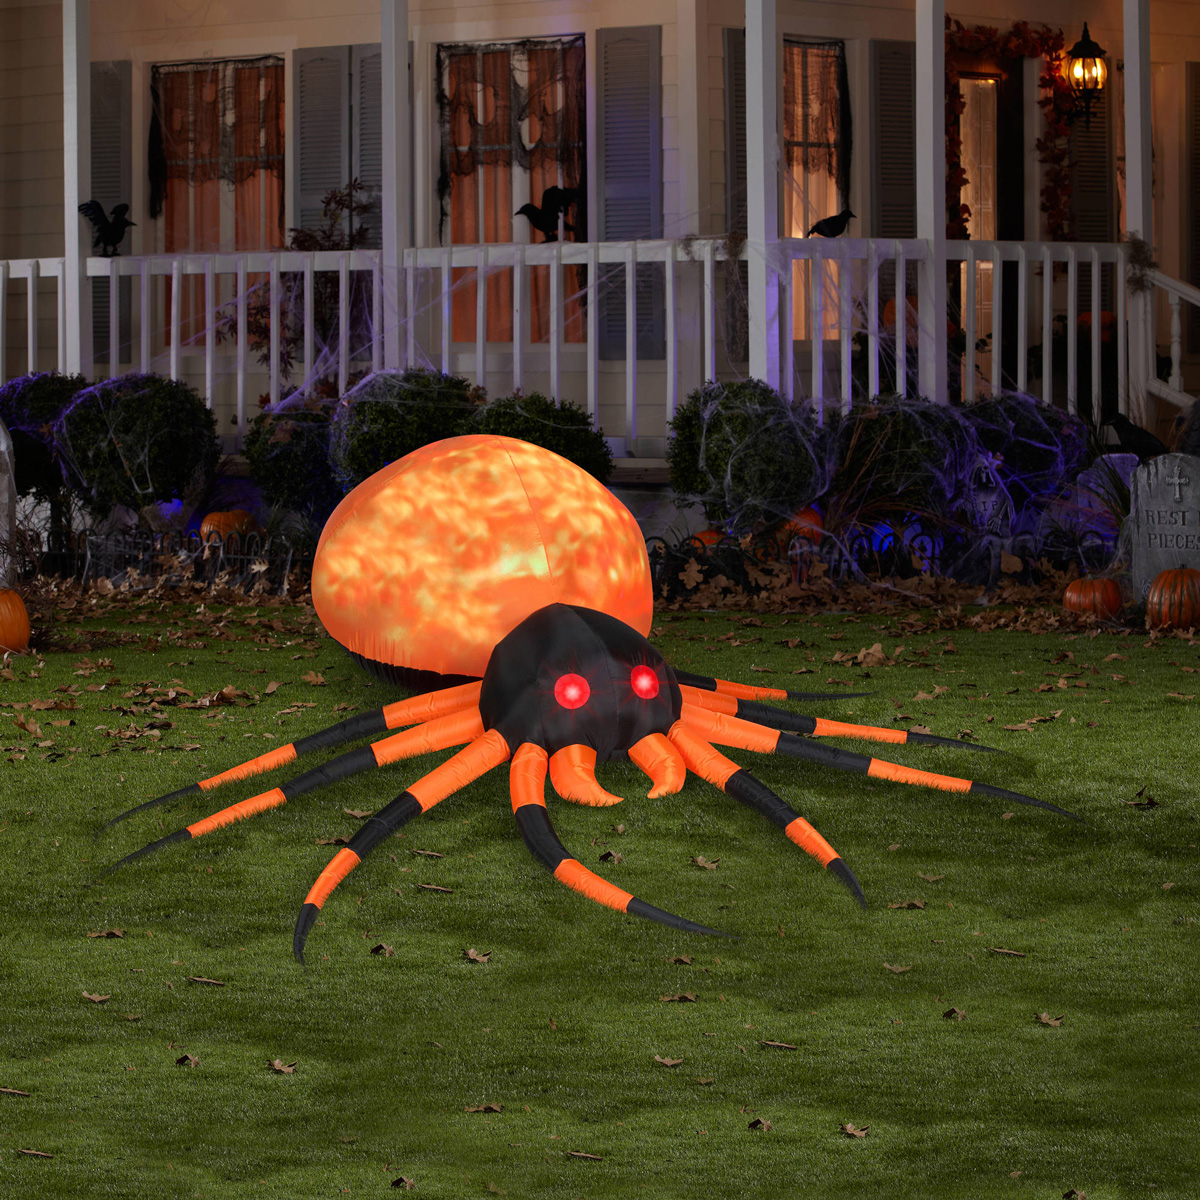 Massive inflatable orange fire and ice projection spider for Animated spider halloween decoration